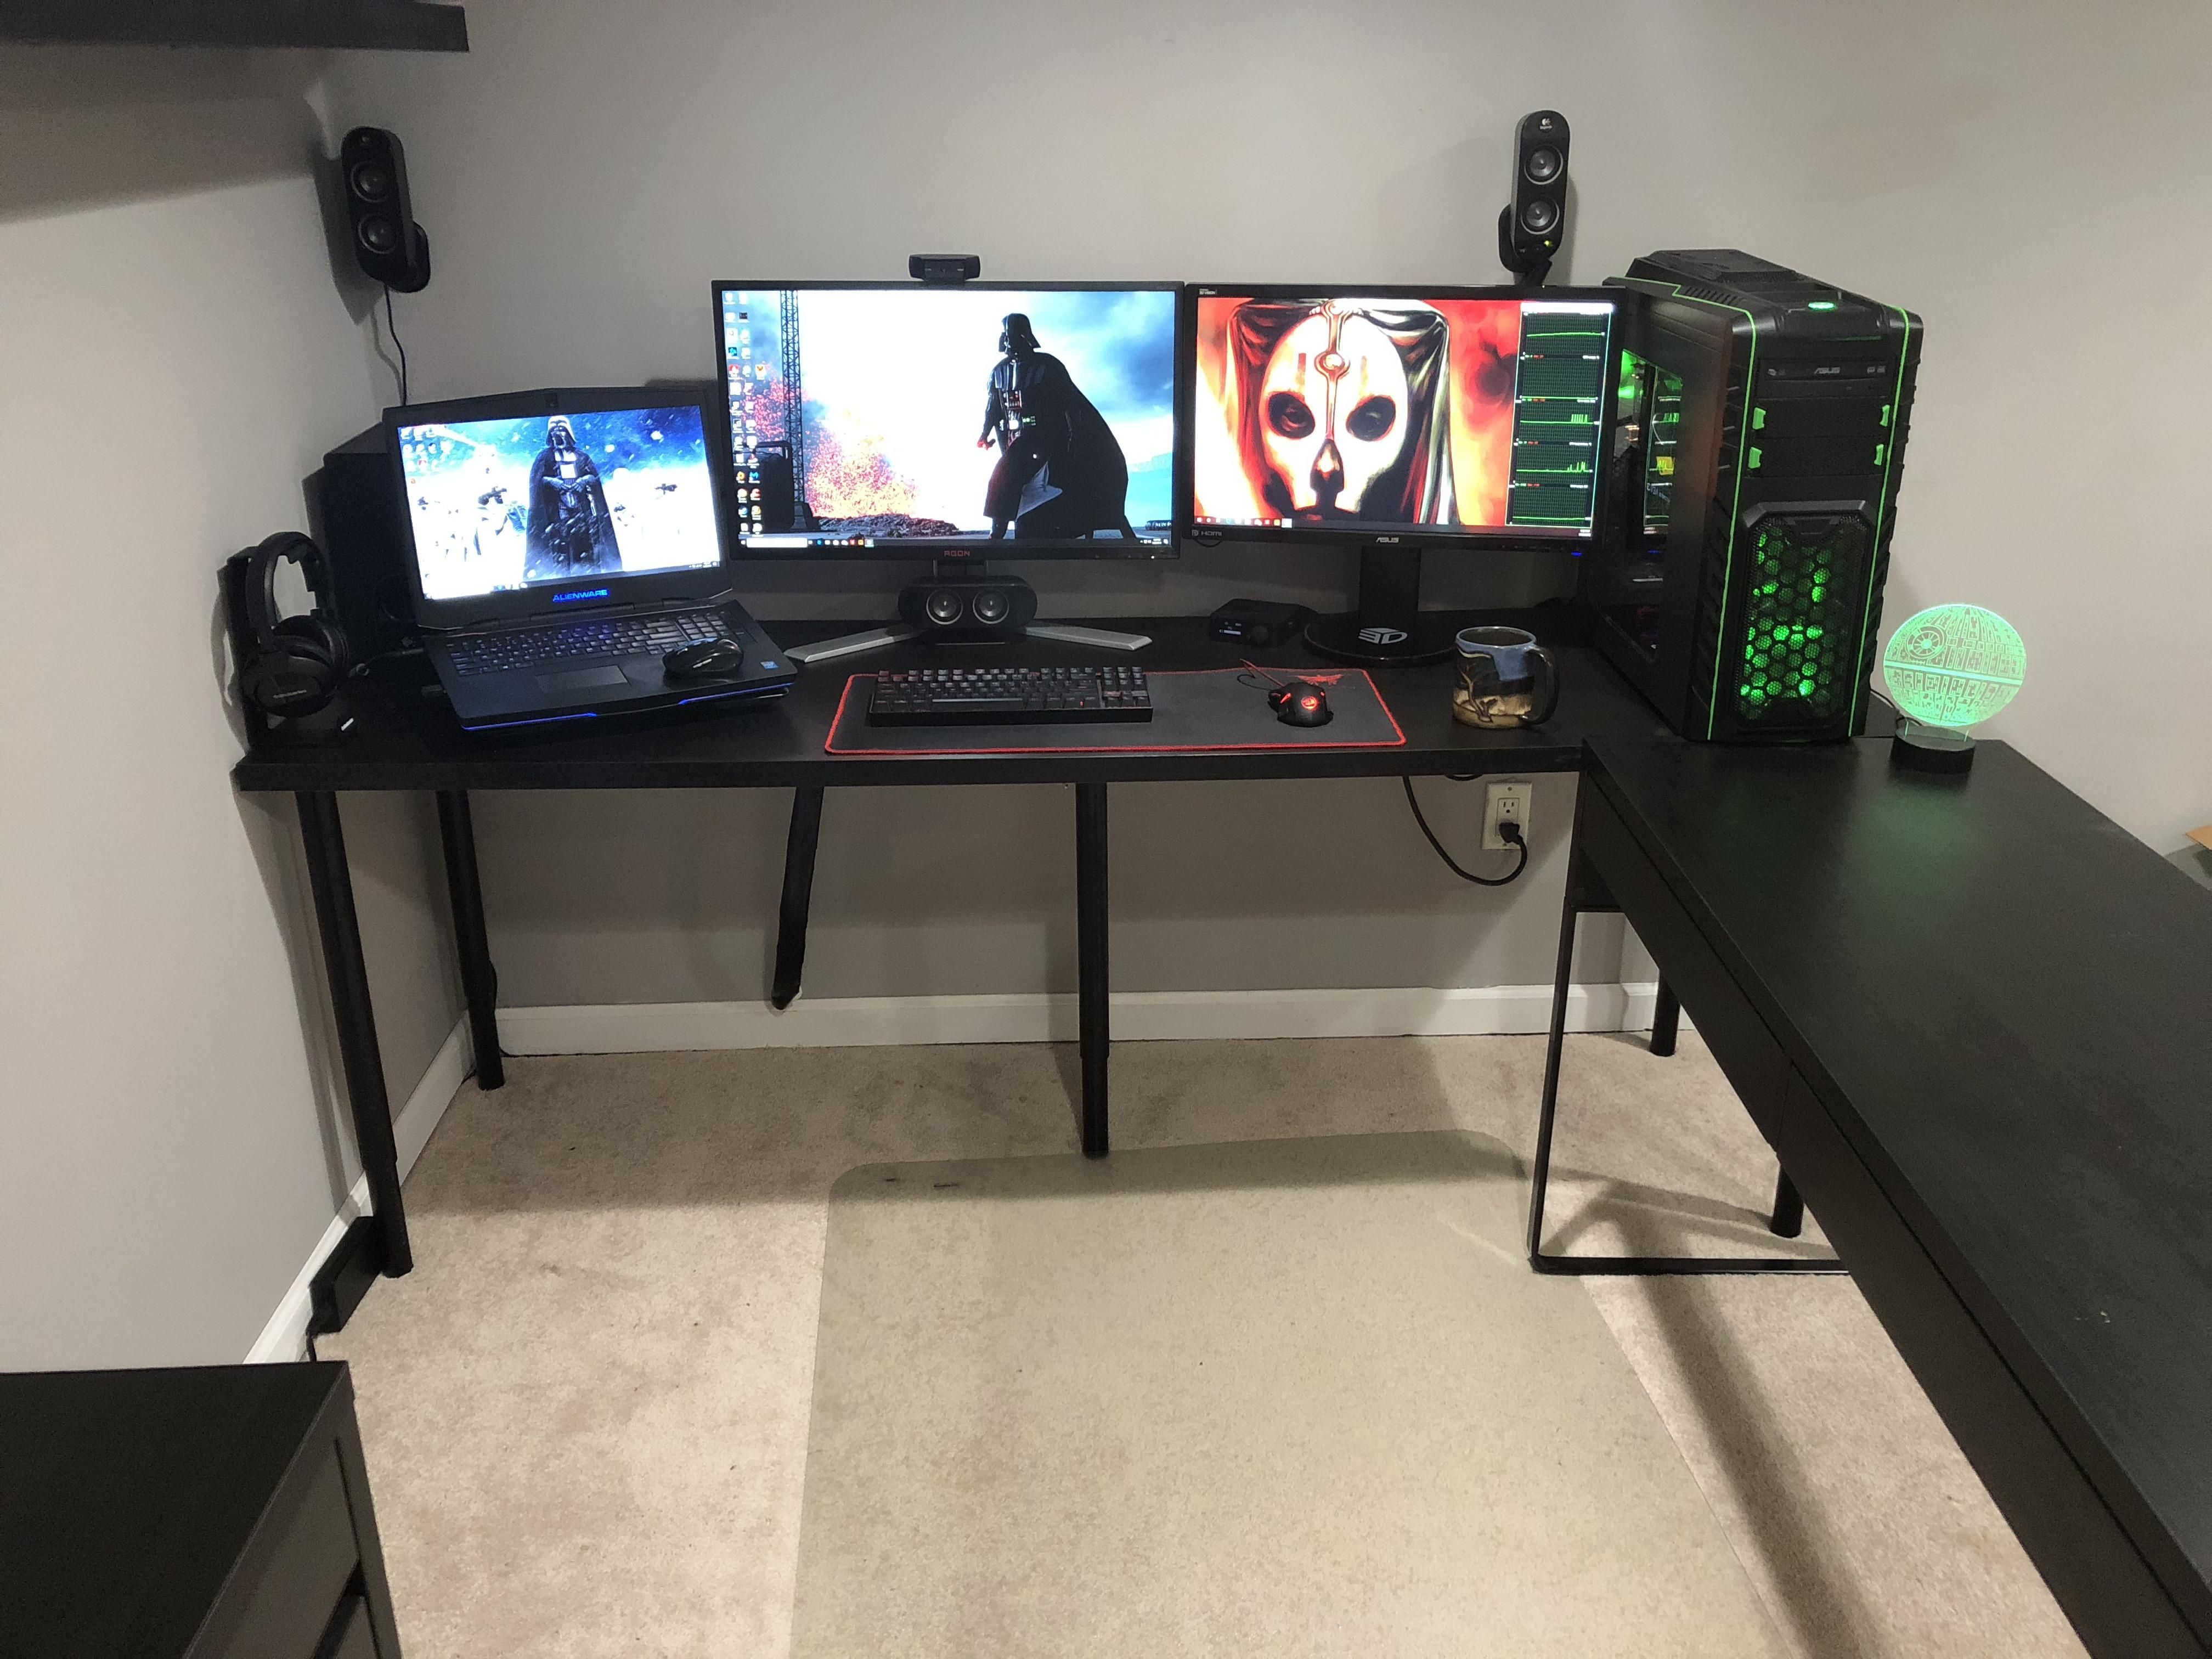 Update Cleaned Up The Wires And Mounted Front Speakers To The Wall Now Just Missing A Tv Above My Monitors Laptop Gaming Setup Best Gaming Setup Gaming Setup